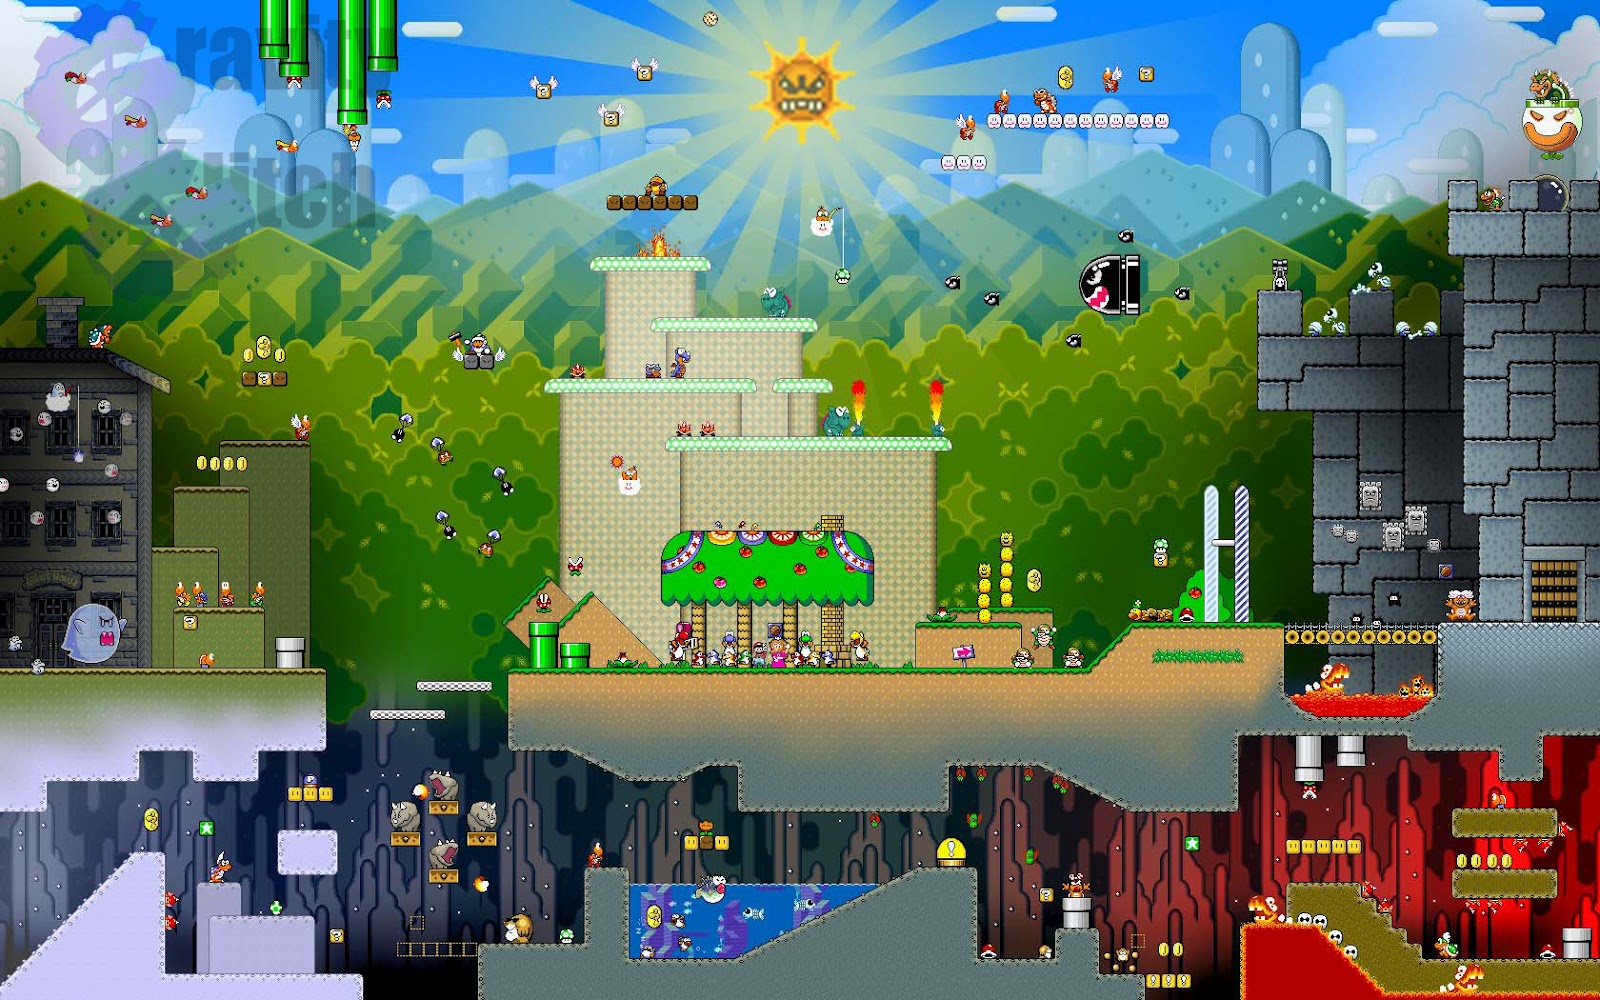 http://4.bp.blogspot.com/-Xv8zHHf5pts/UAlCzZj3JaI/AAAAAAAABxo/Jv80e487AbU/s1600/super+mario+world+map+level+classic+wallpaper+background+super+nintendo+nes+system.jpg